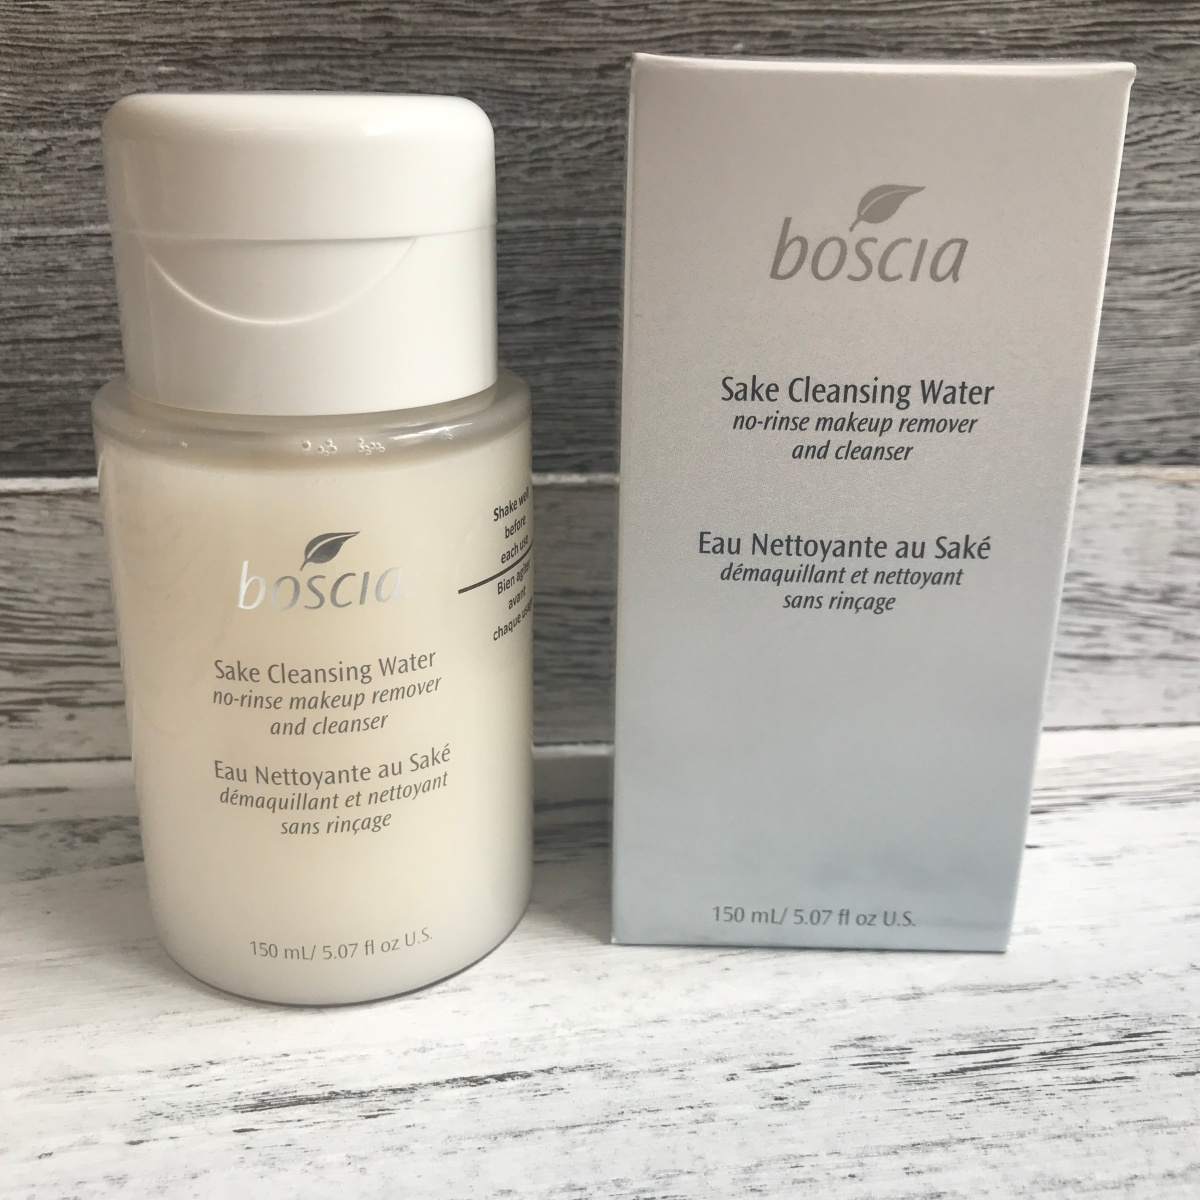 BOSCIA Sake Cleansing Water No-Rinse Makeup Remover and Cleanser